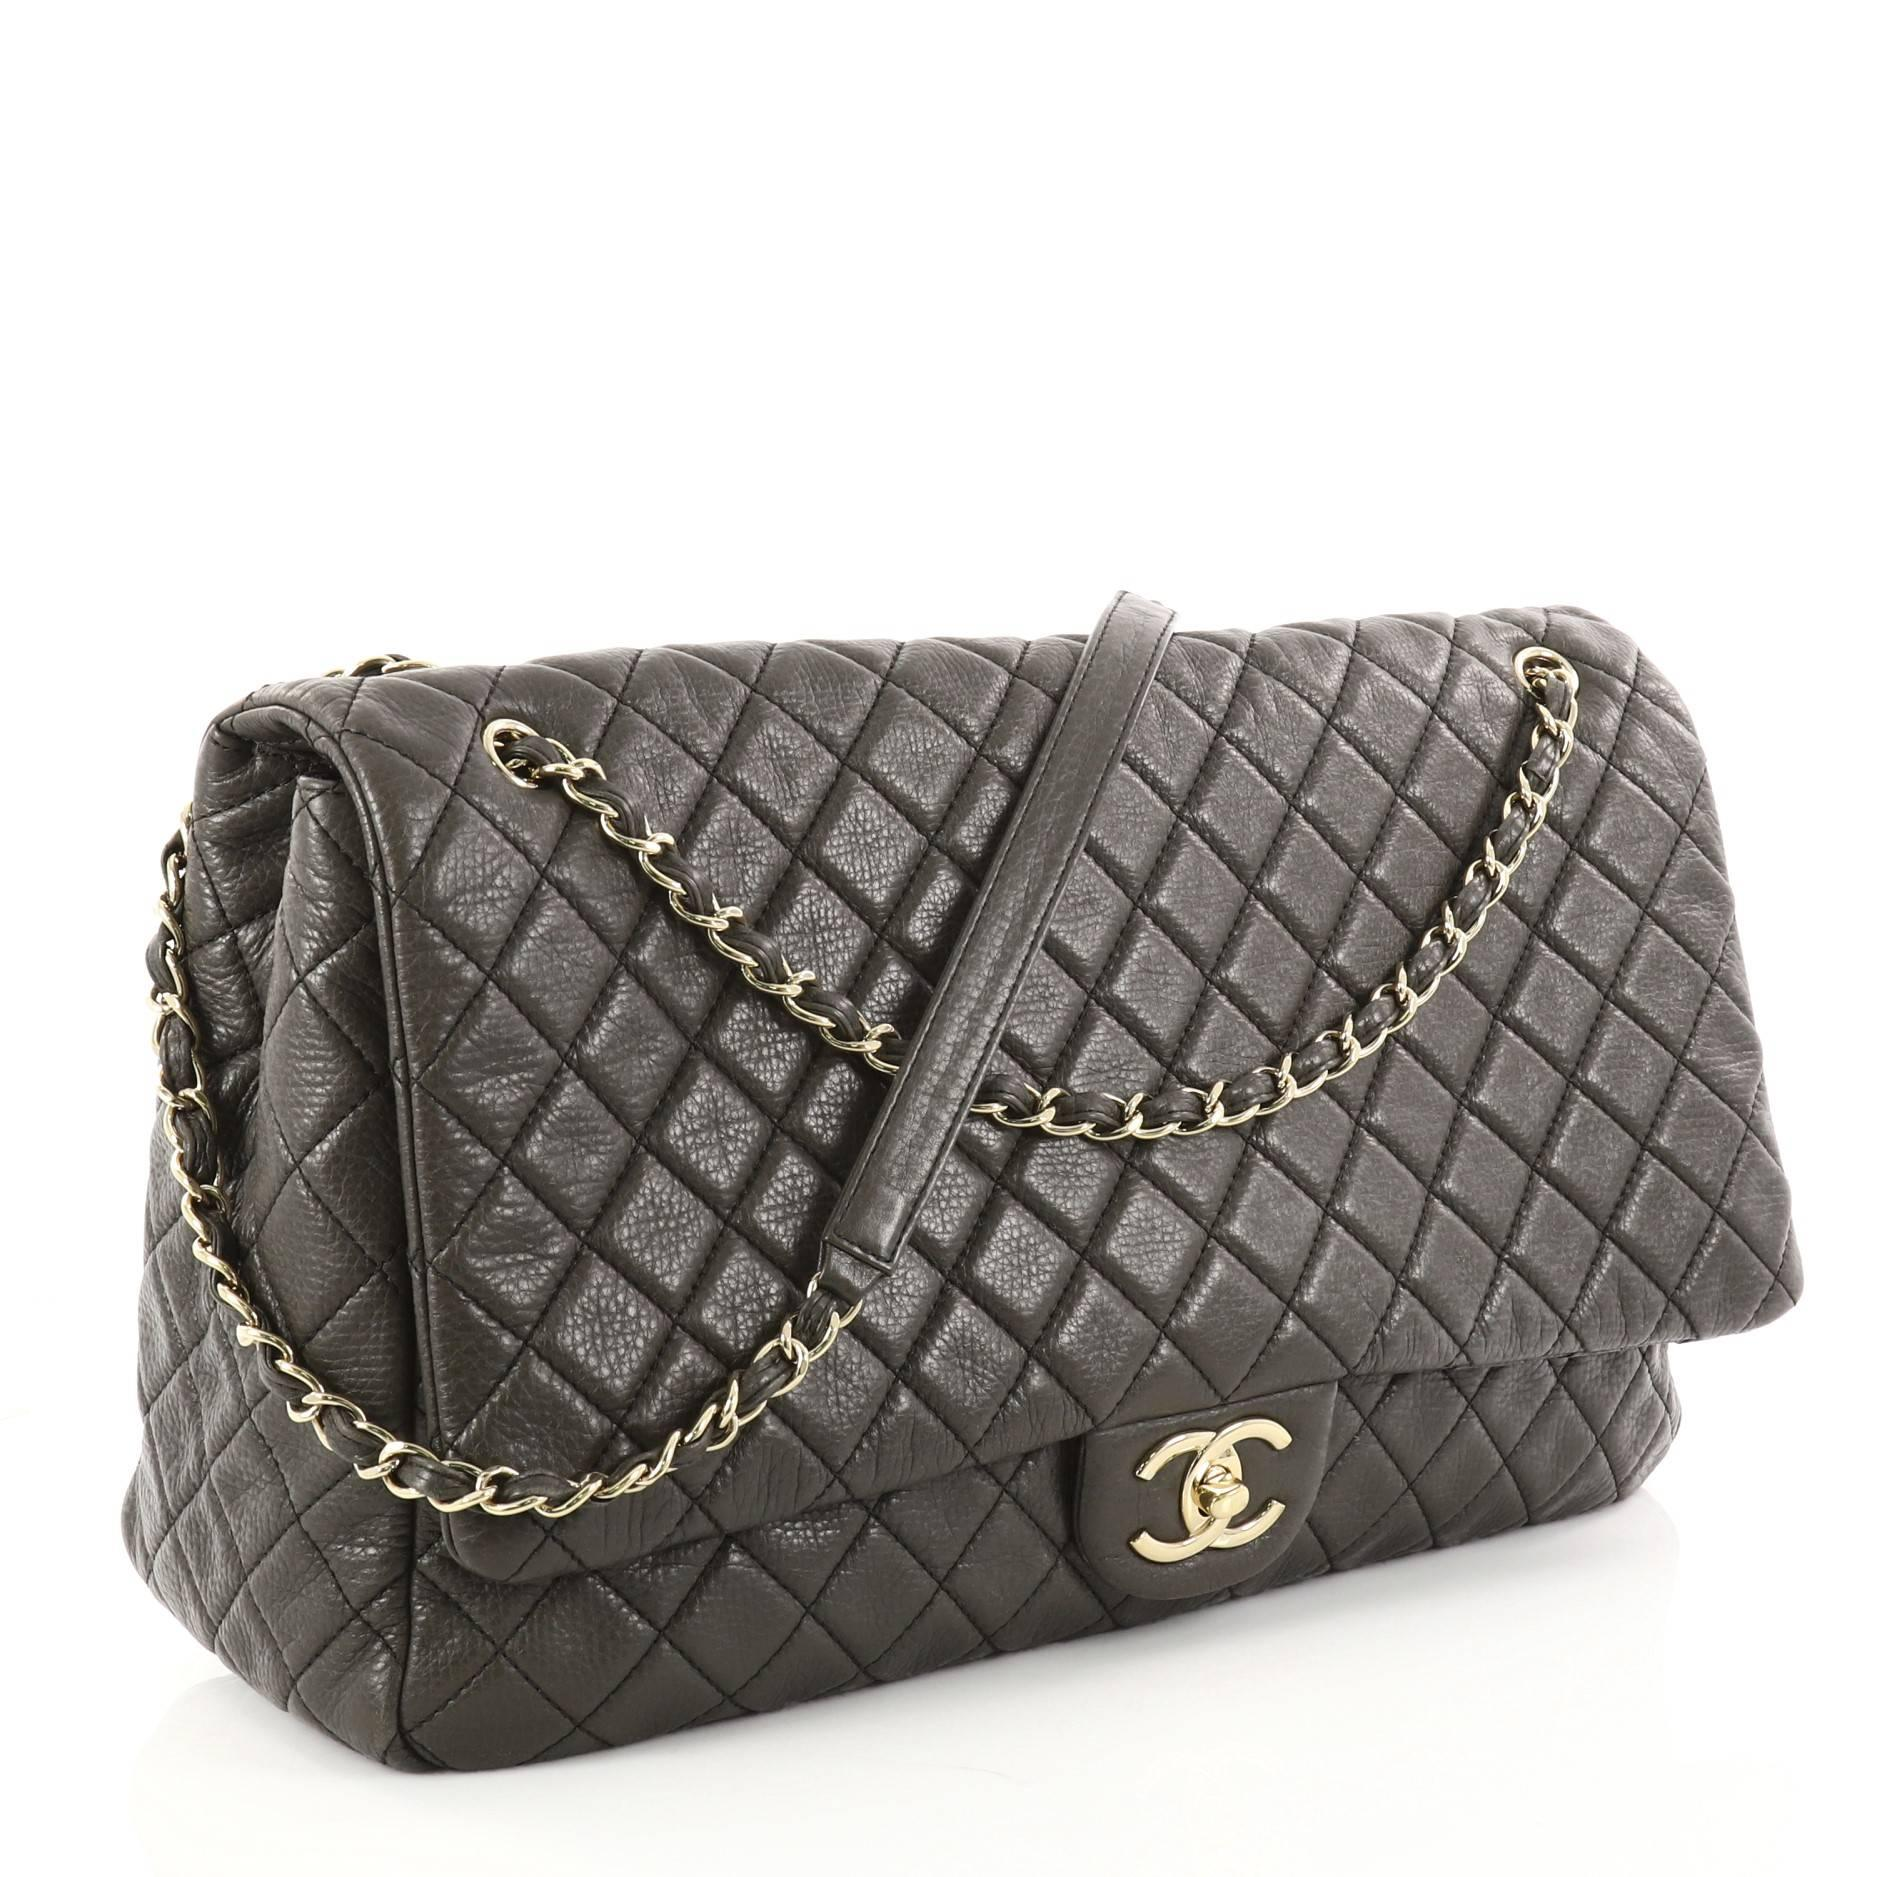 3d8b85437126 Chanel Airlines CC Quilted Calfskin XXL Flap Bag at 1stdibs